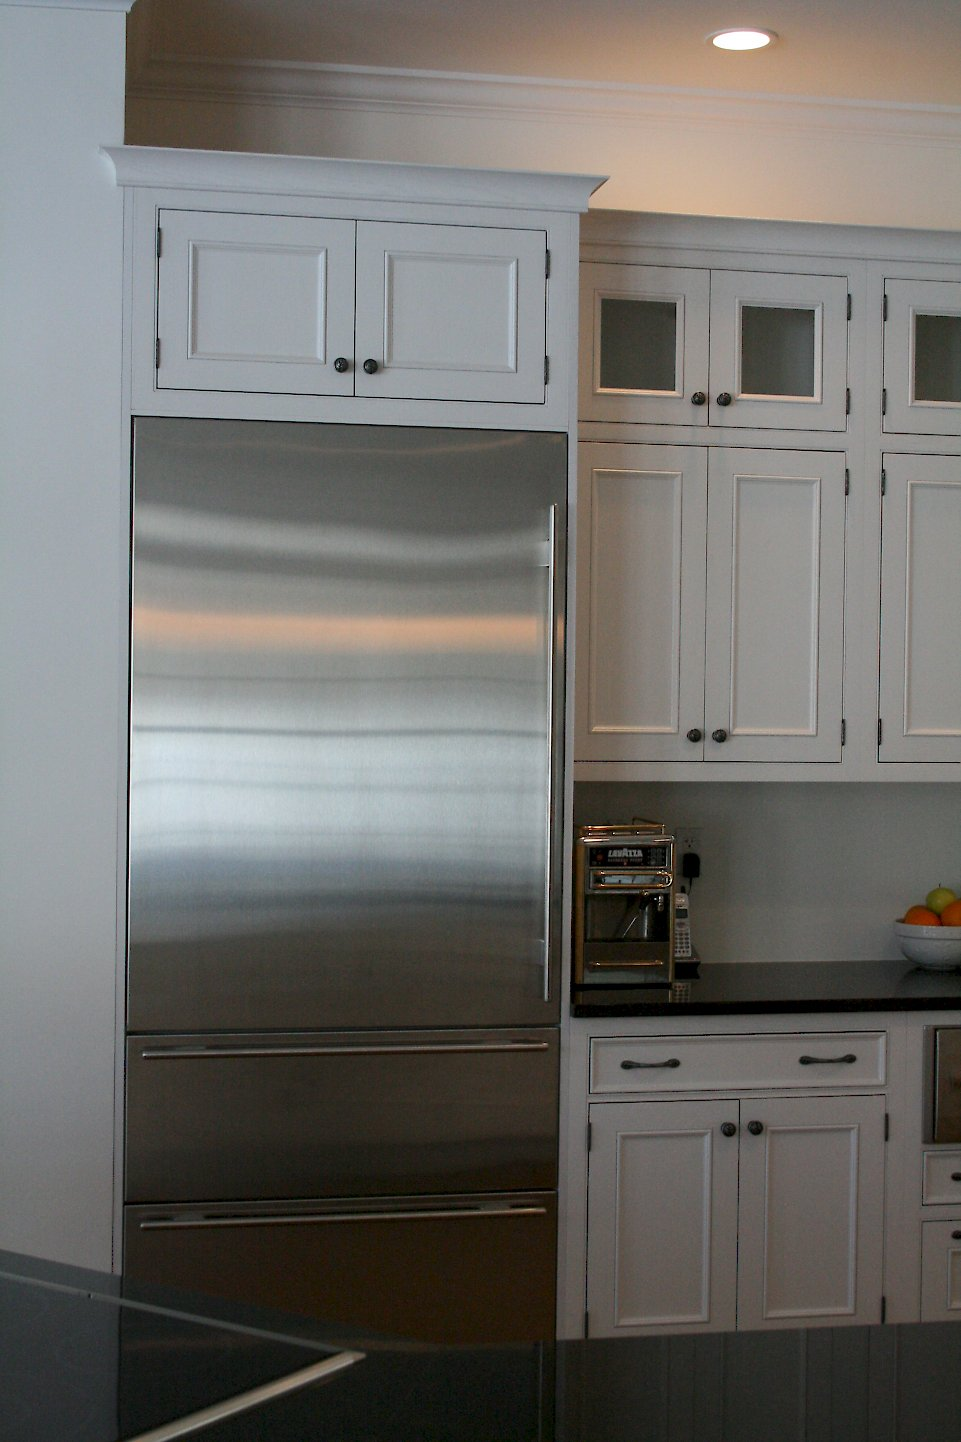 Sub-Zero #736TCI refrigerator with a stainless front.